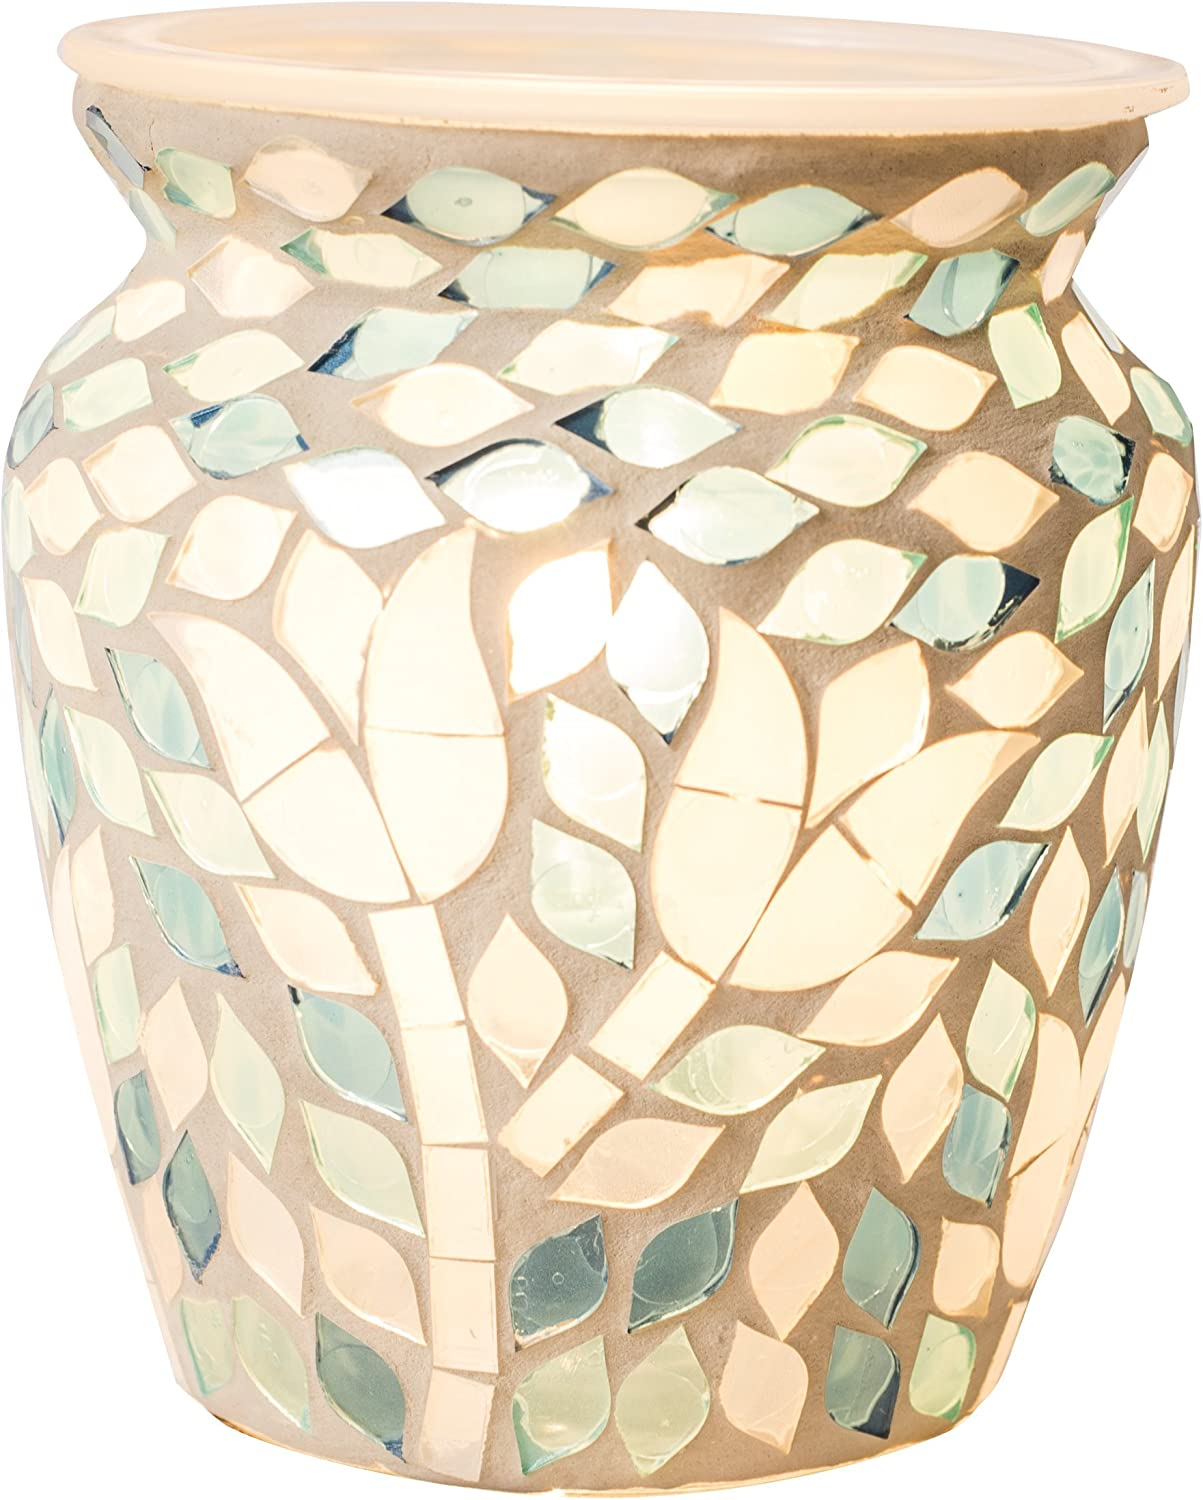 Scentsationals Mosaic Collection - Garden Delight - Scented Wax Warmer - Fragrance Wax Cube Melter & Burner - Electric Home Air Freshener Art Gift